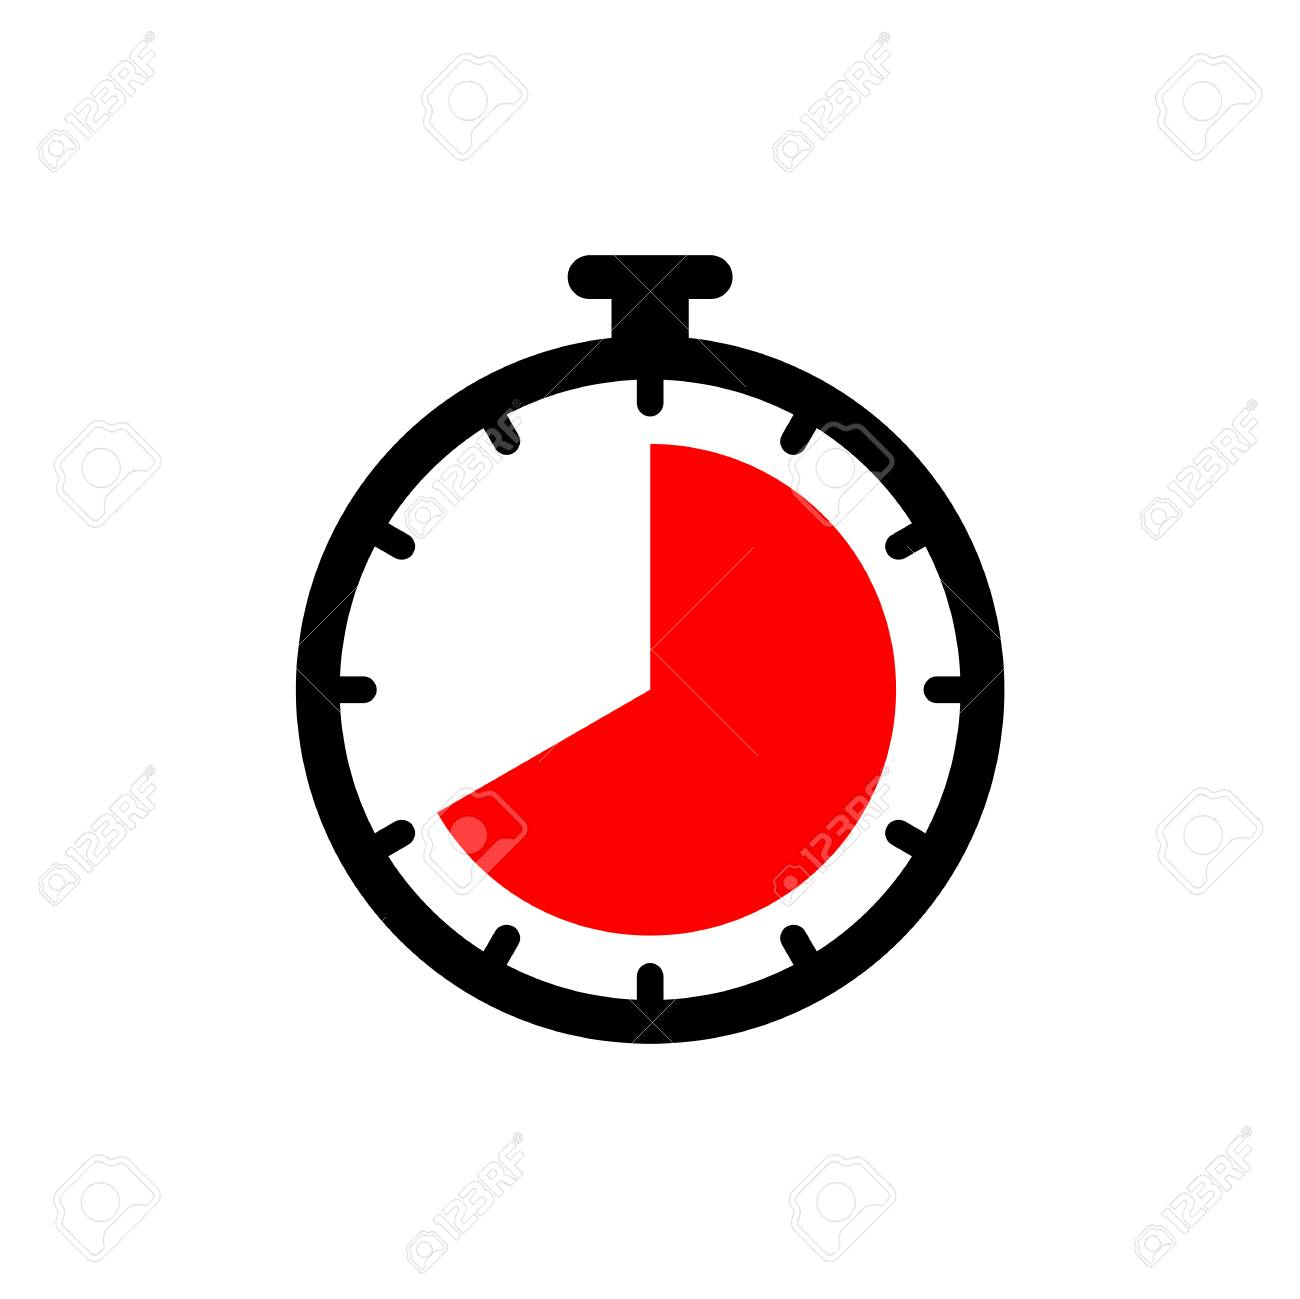 timer clock icon ui simple style flat illustration royalty free